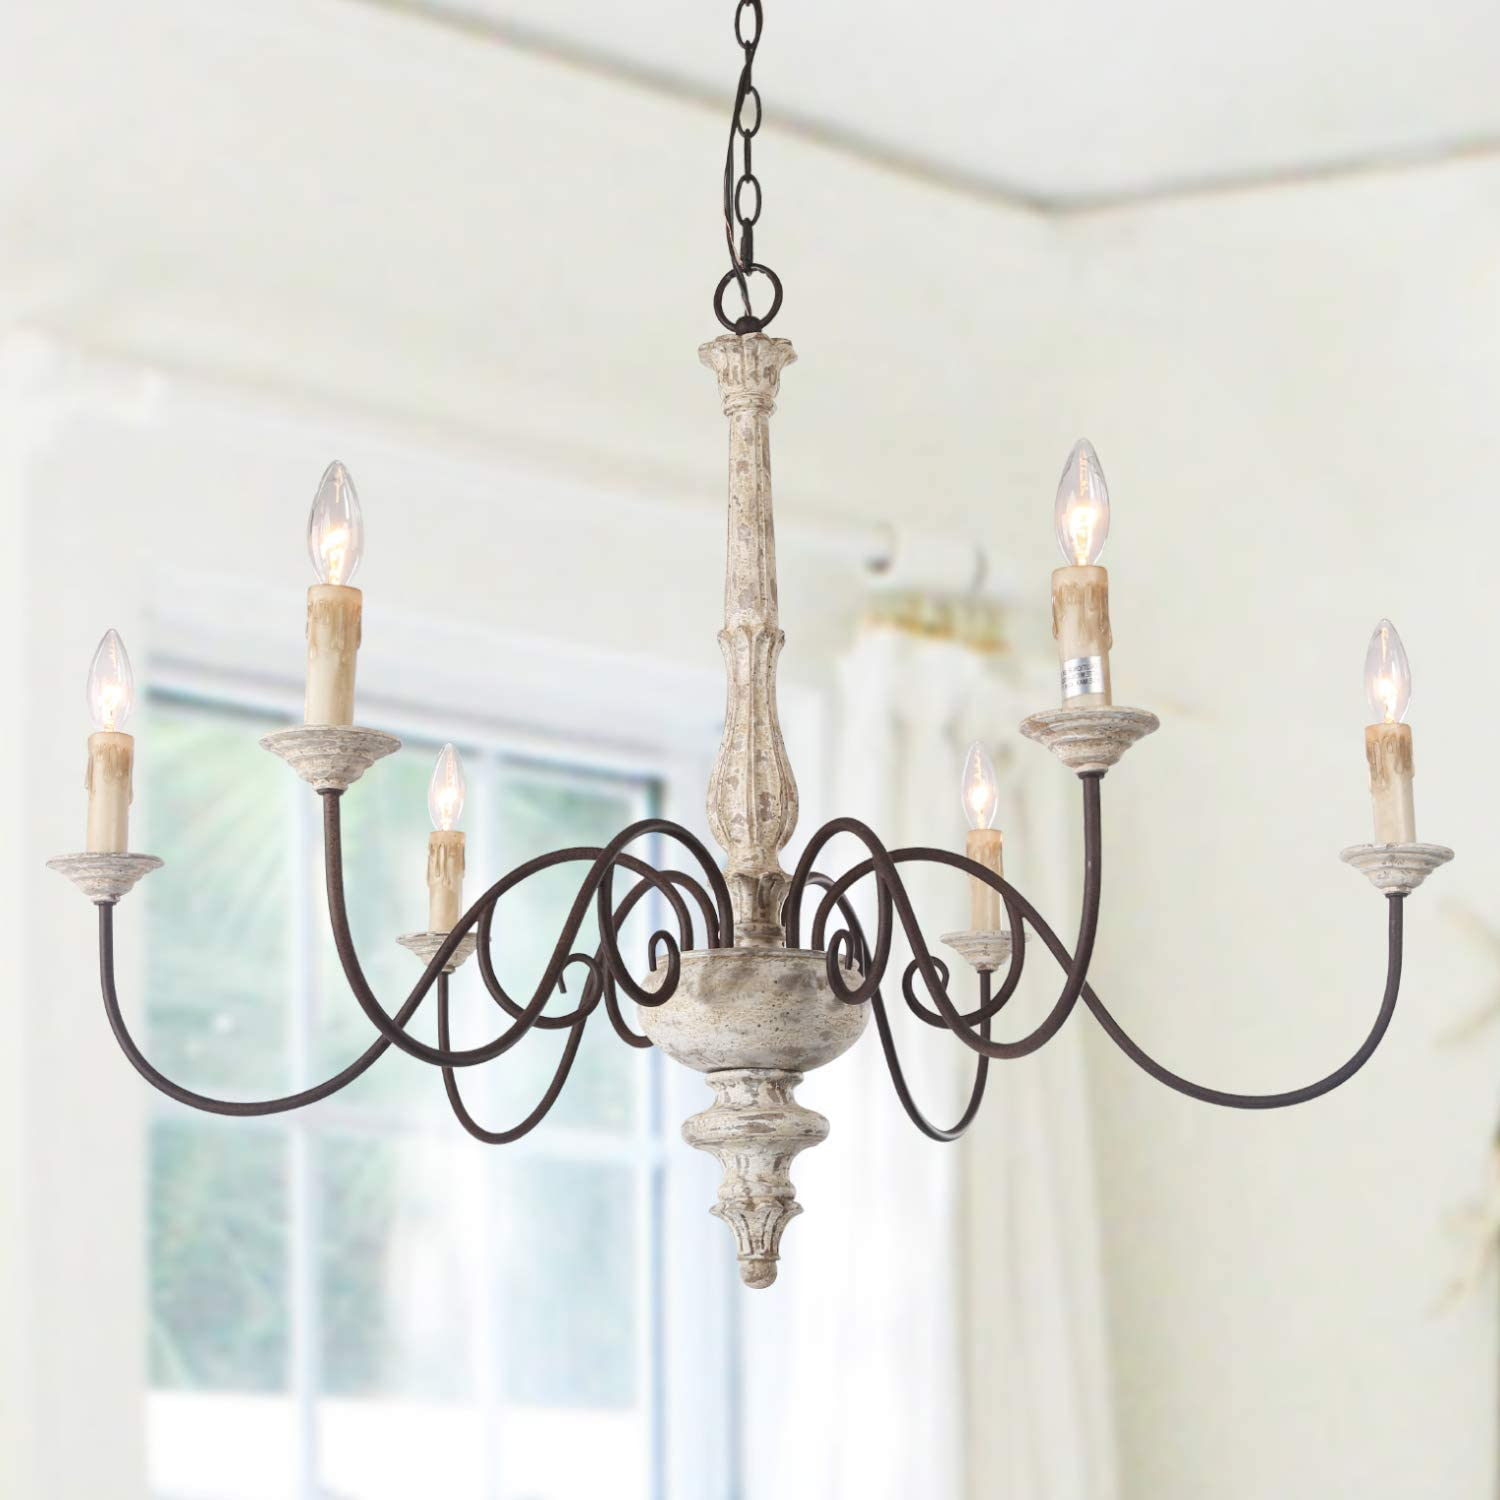 lnc farmhouse kitchen island lighting french country chandelier for dining room white distressed wood 37 l x 28 h walmart com